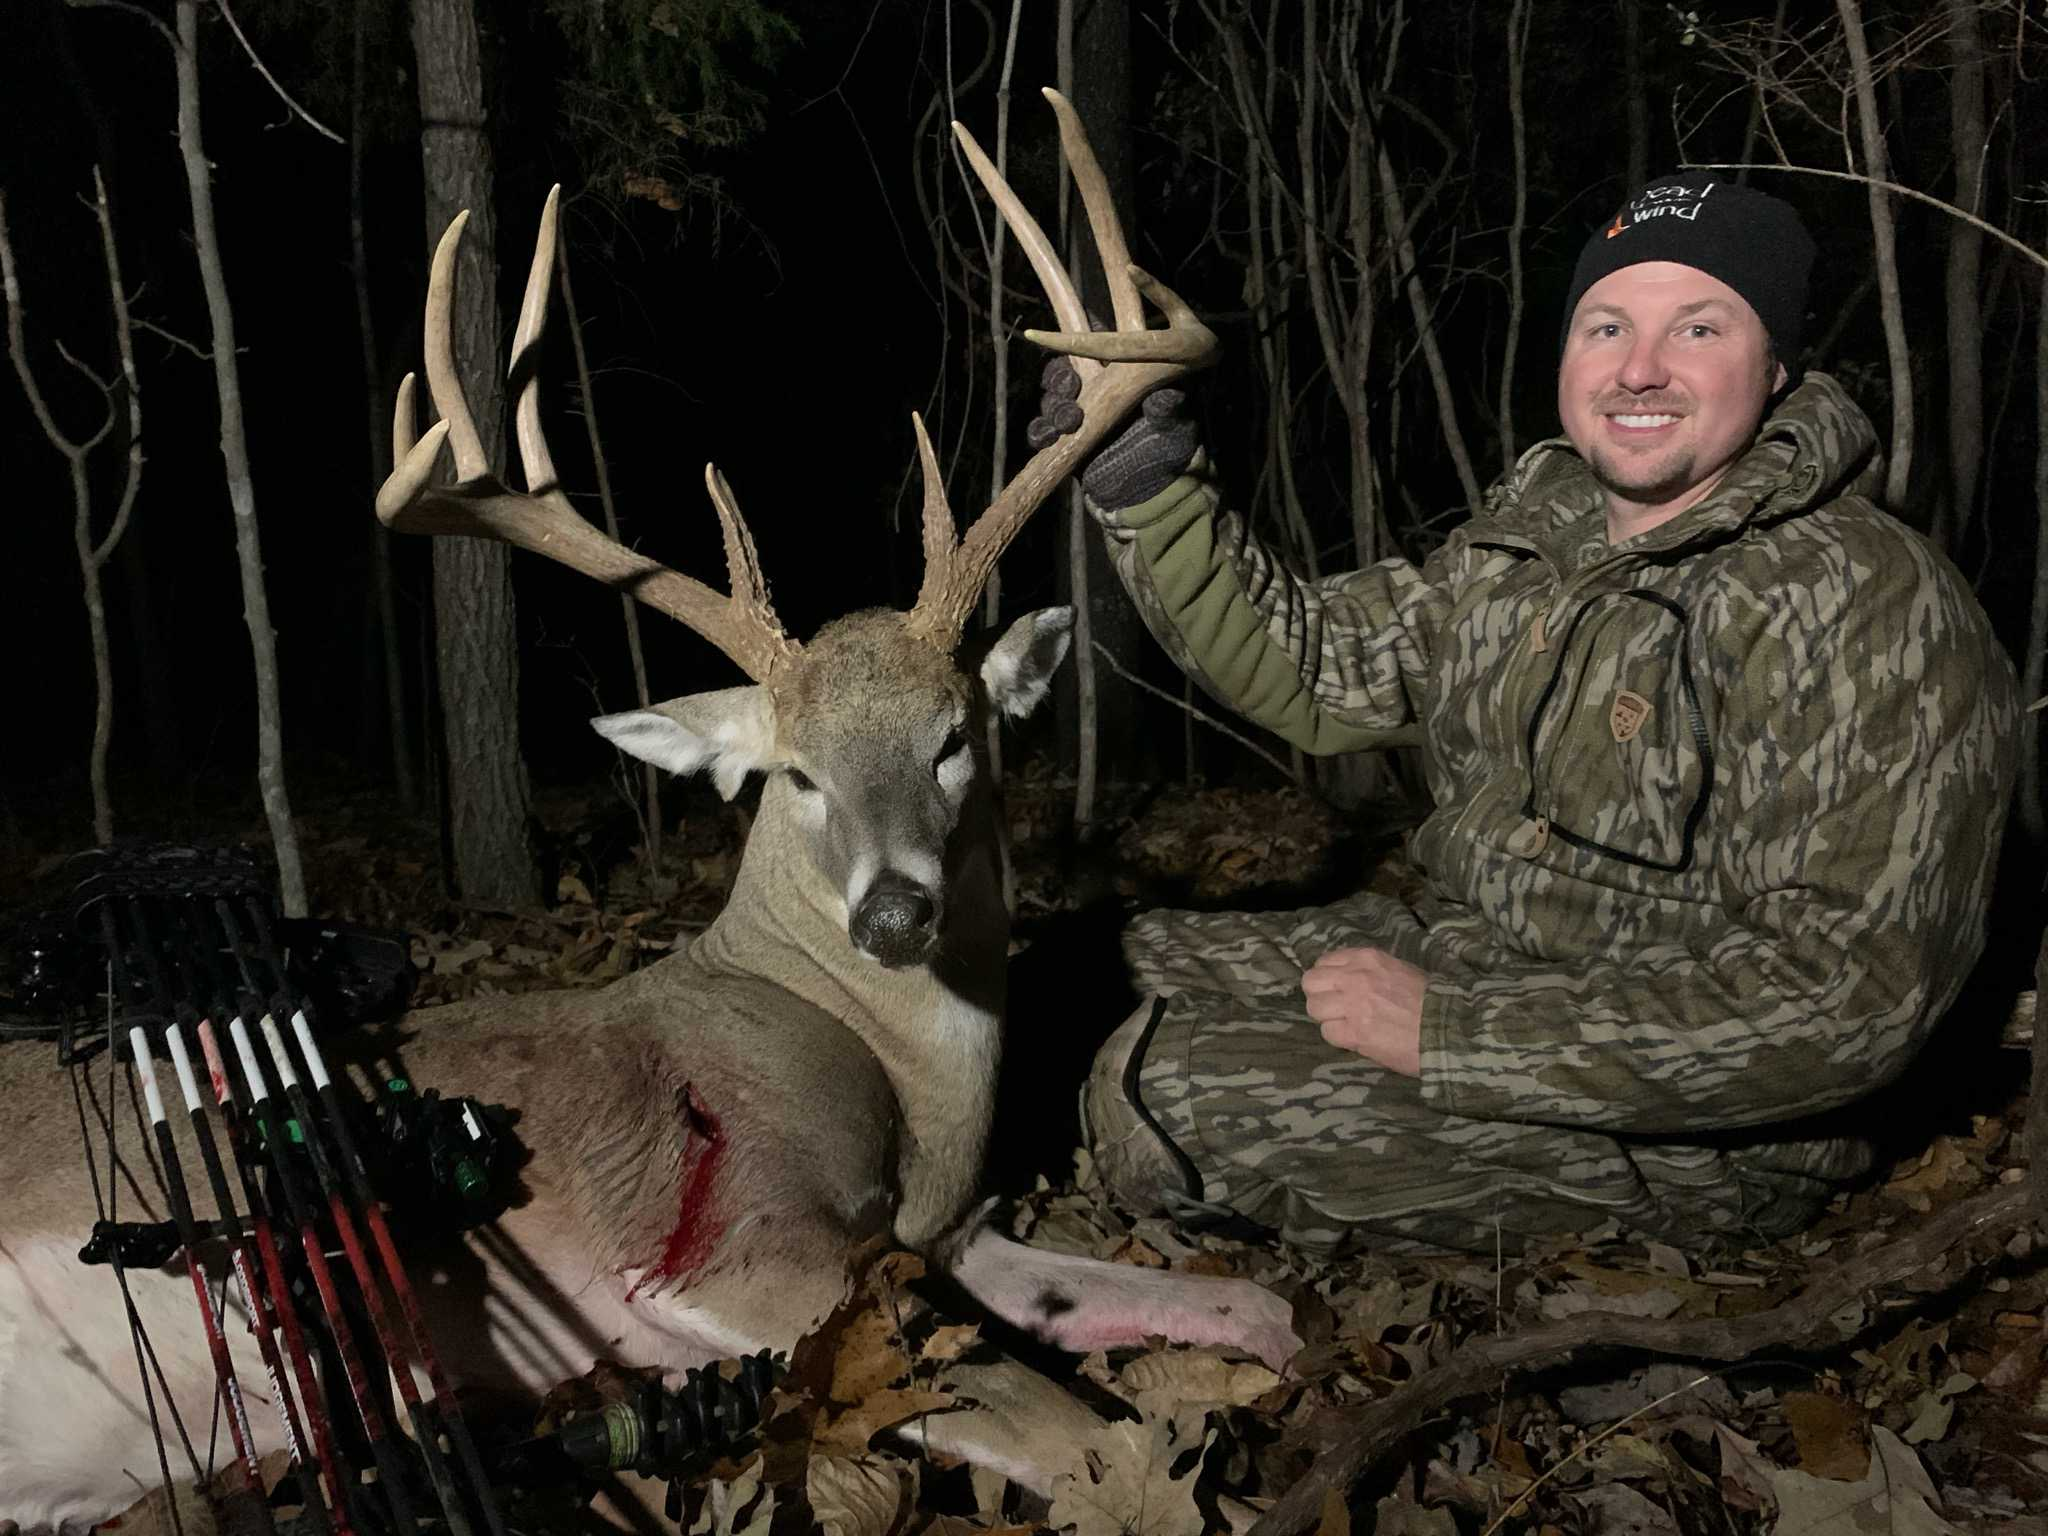 Whiplash: The Story of a 6.5 Year-Old Whitetail